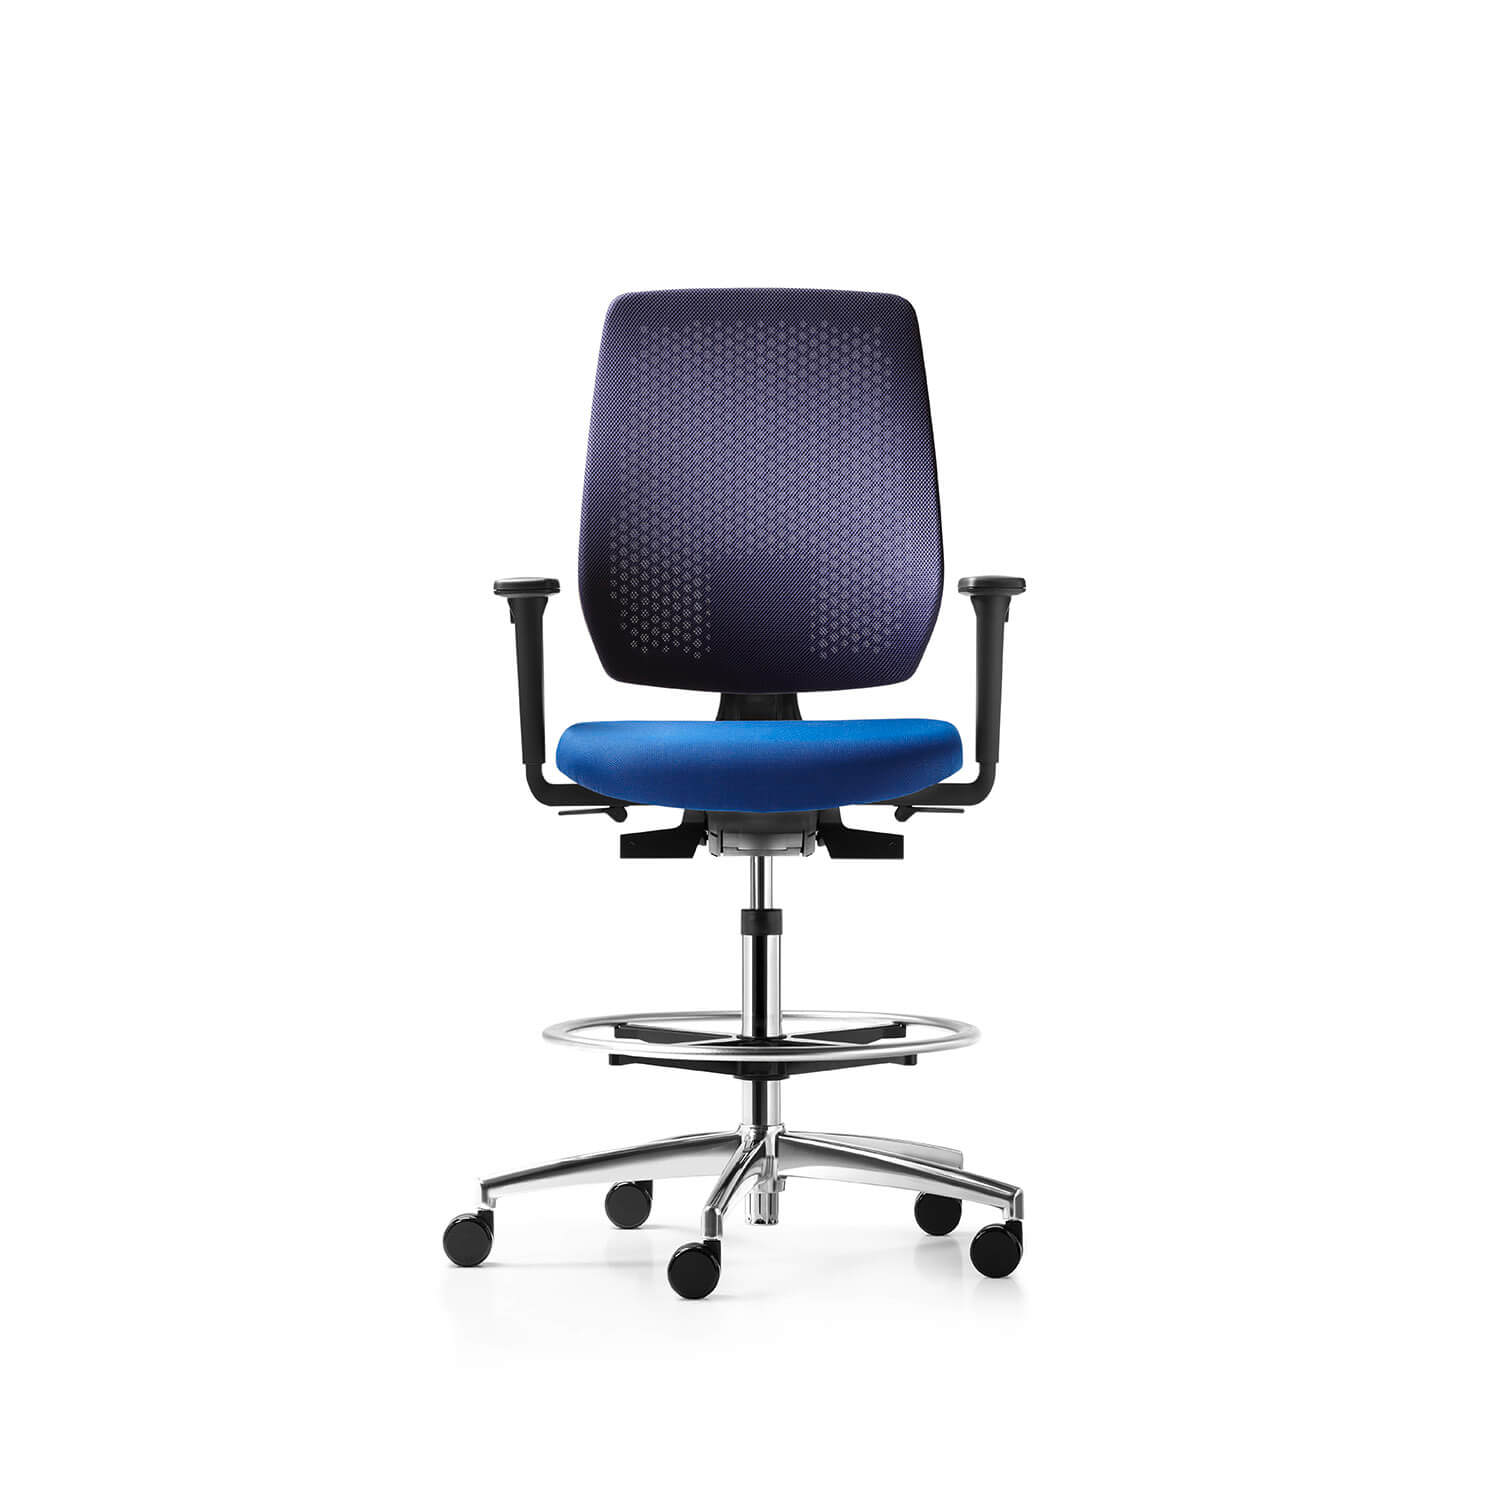 office drafting chair. Home\u003eOffice Chairs\u003eTask Chairs\u003eSpeed-O Drafting Stool Office Chair A